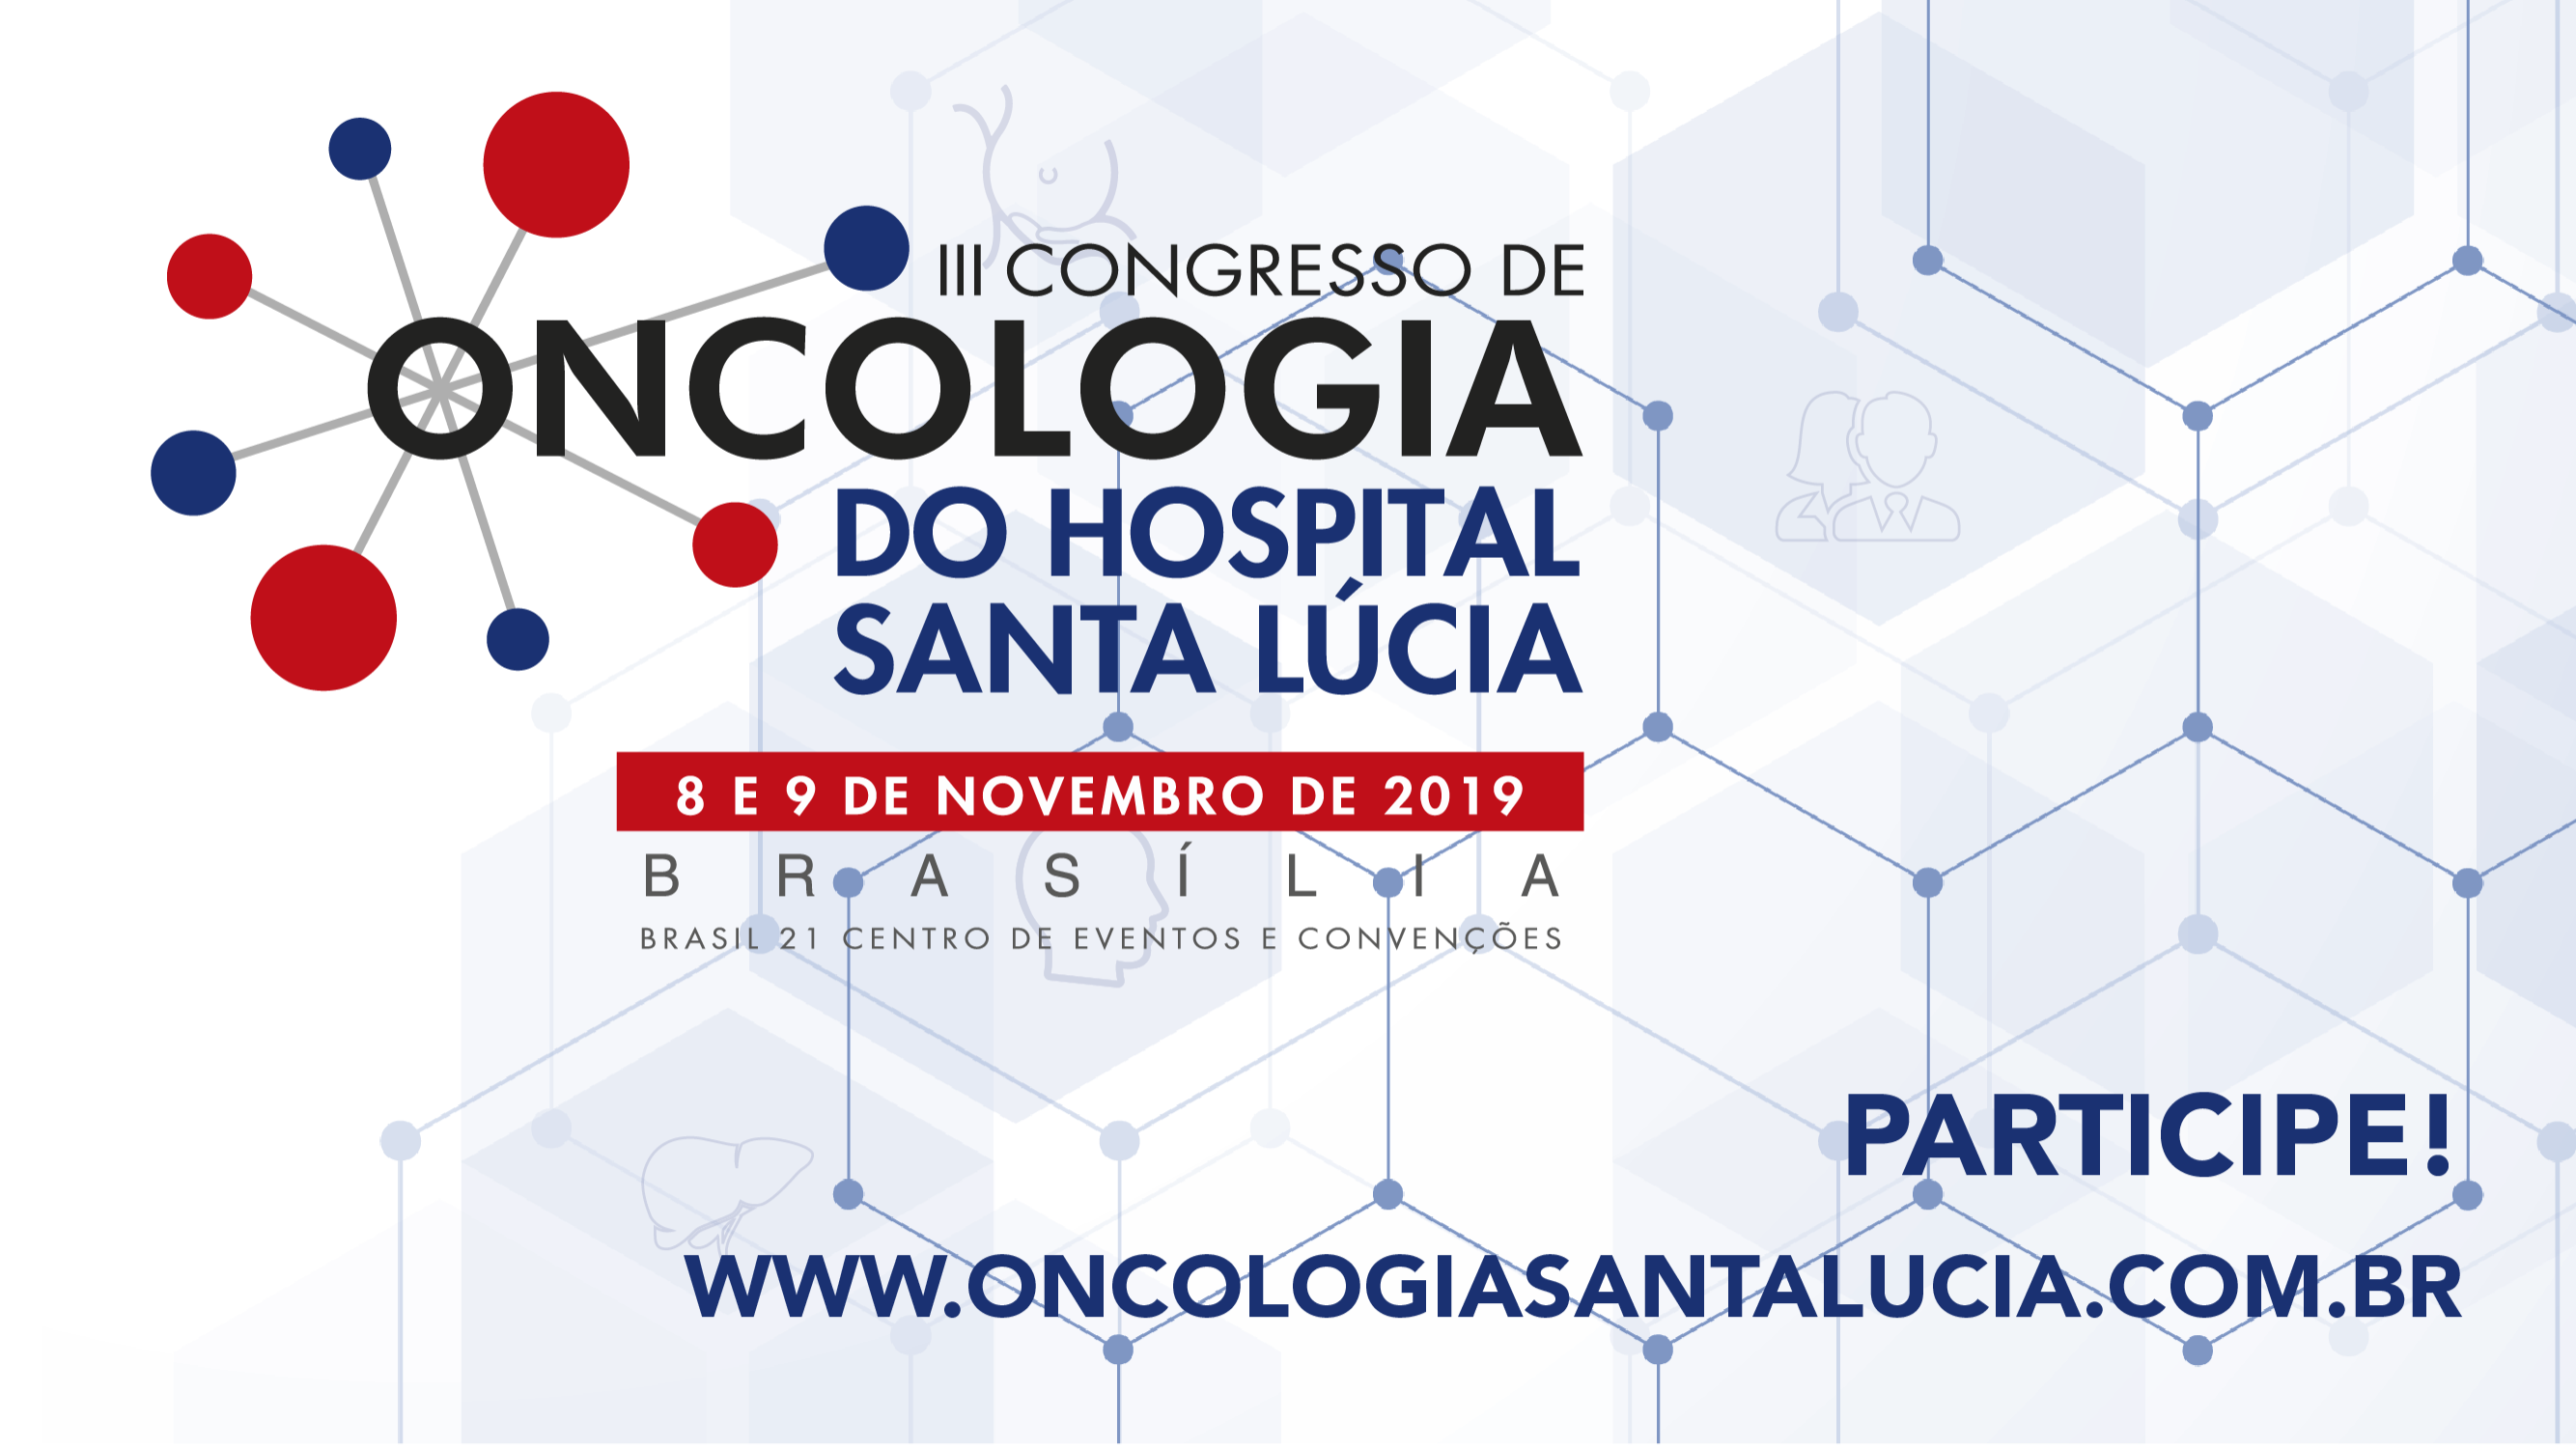 III Congresso de Oncologia do Hospital Santa Lucia